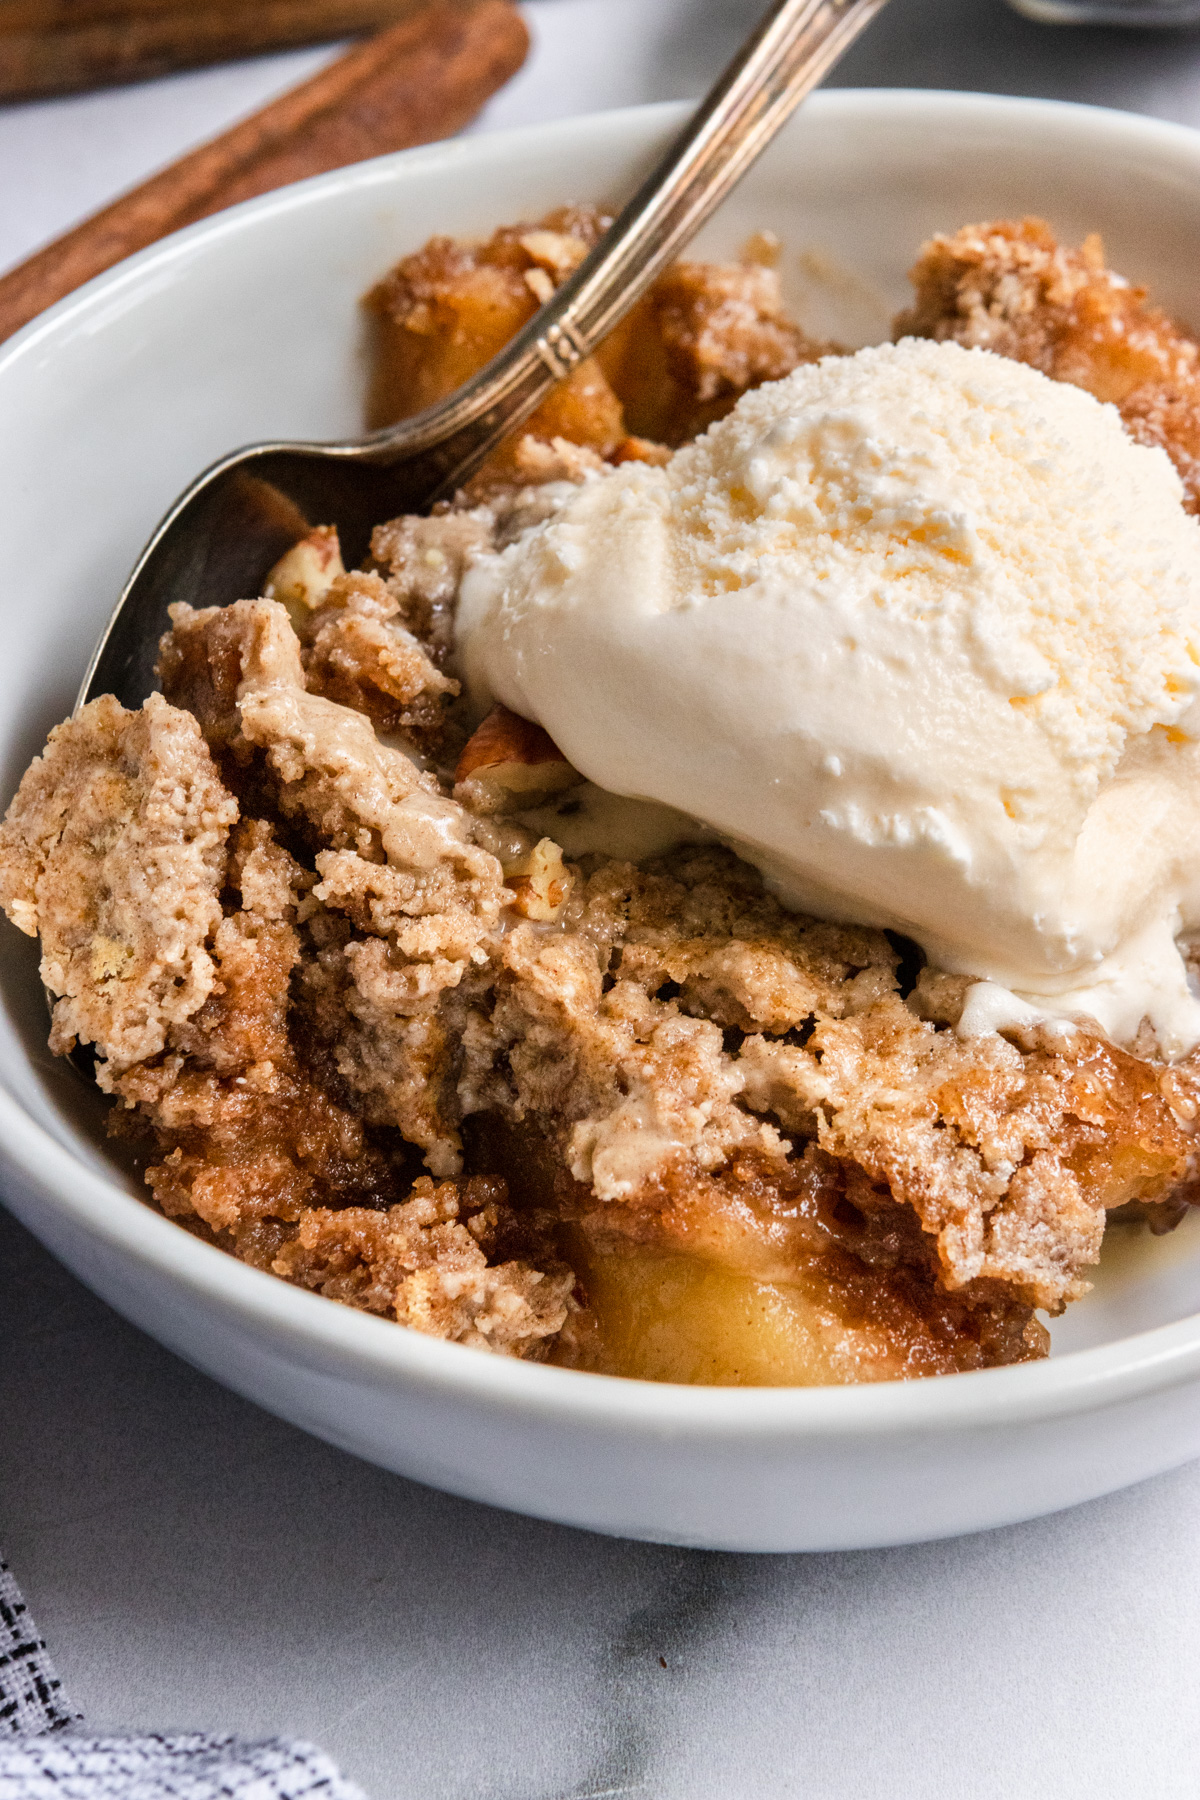 Apple dump cake in bowl with ice cream on top.